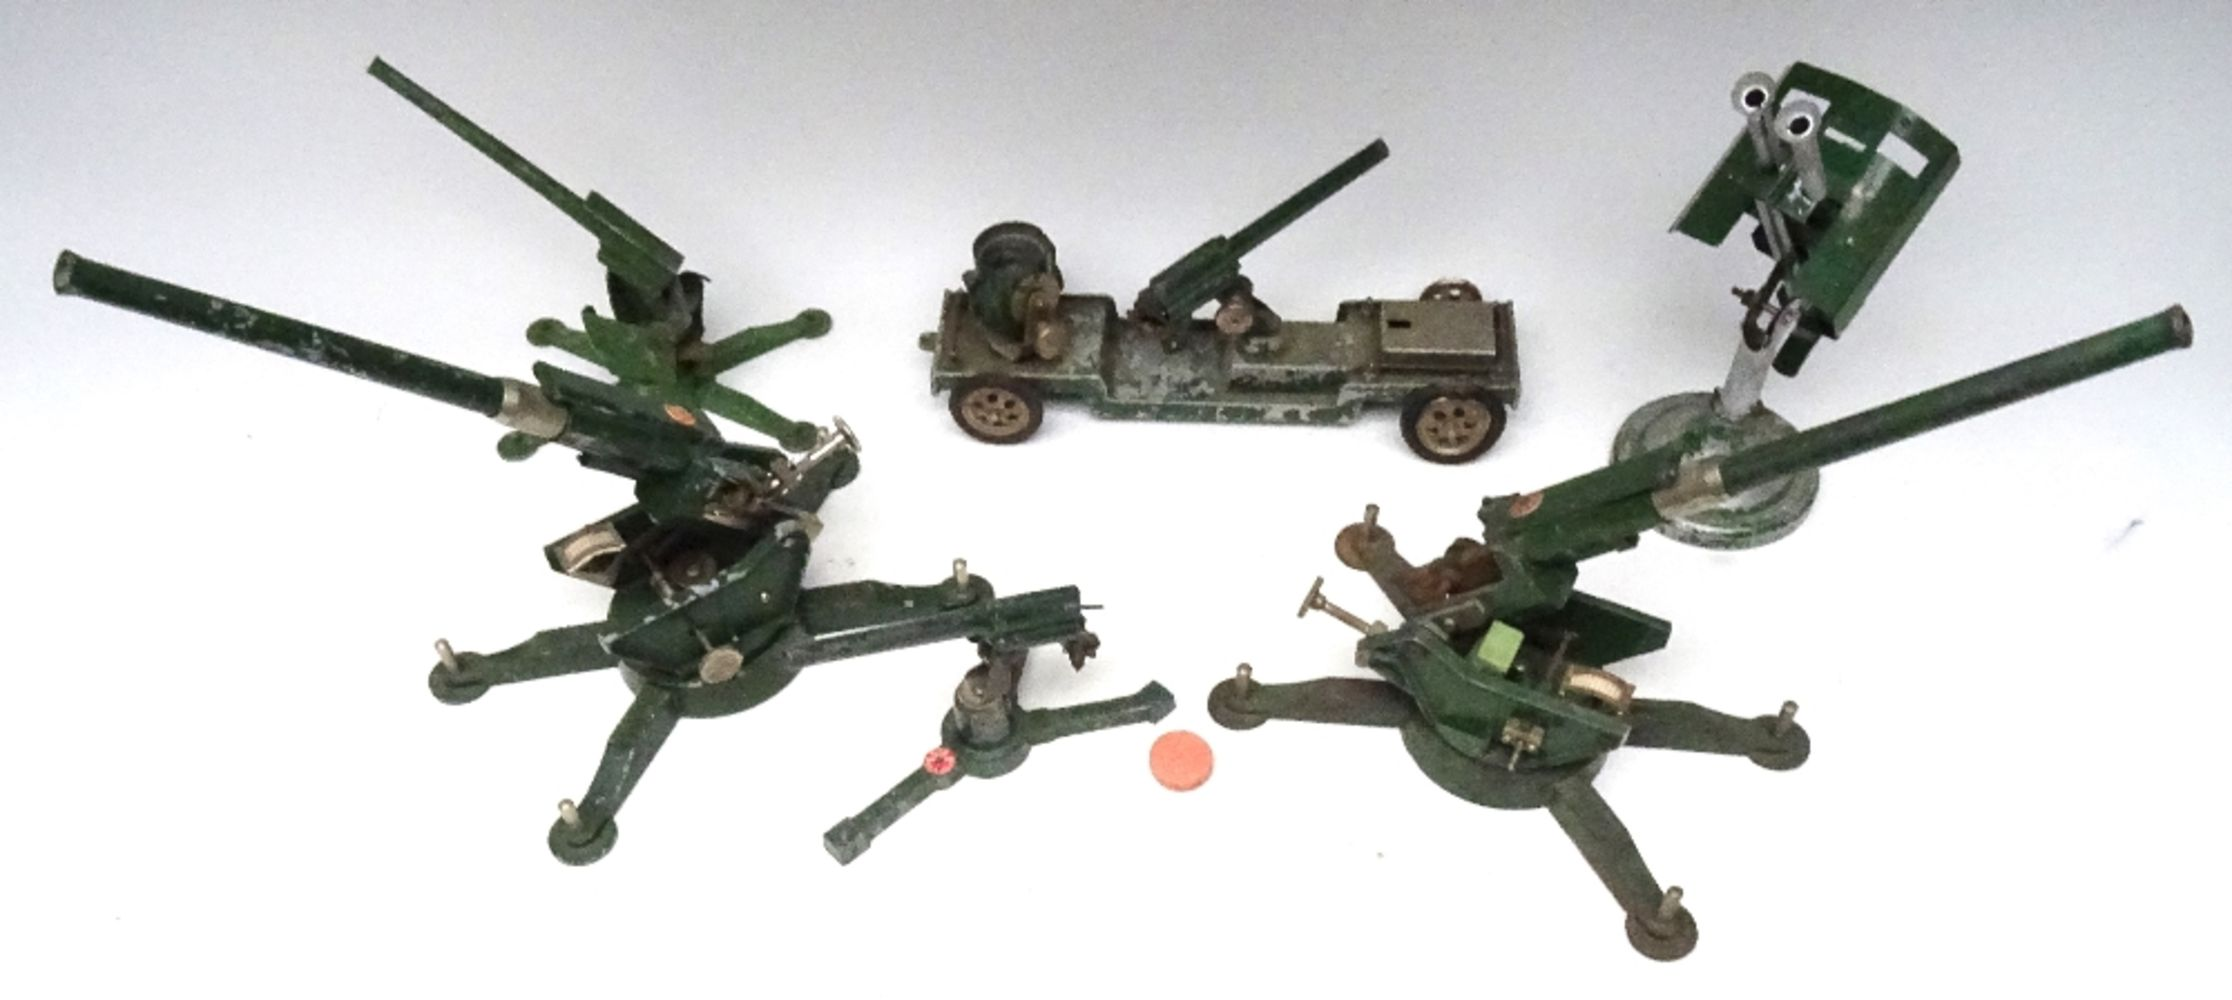 Toy Soldiers and Collectable Toys Webcast Online and Postal Auction